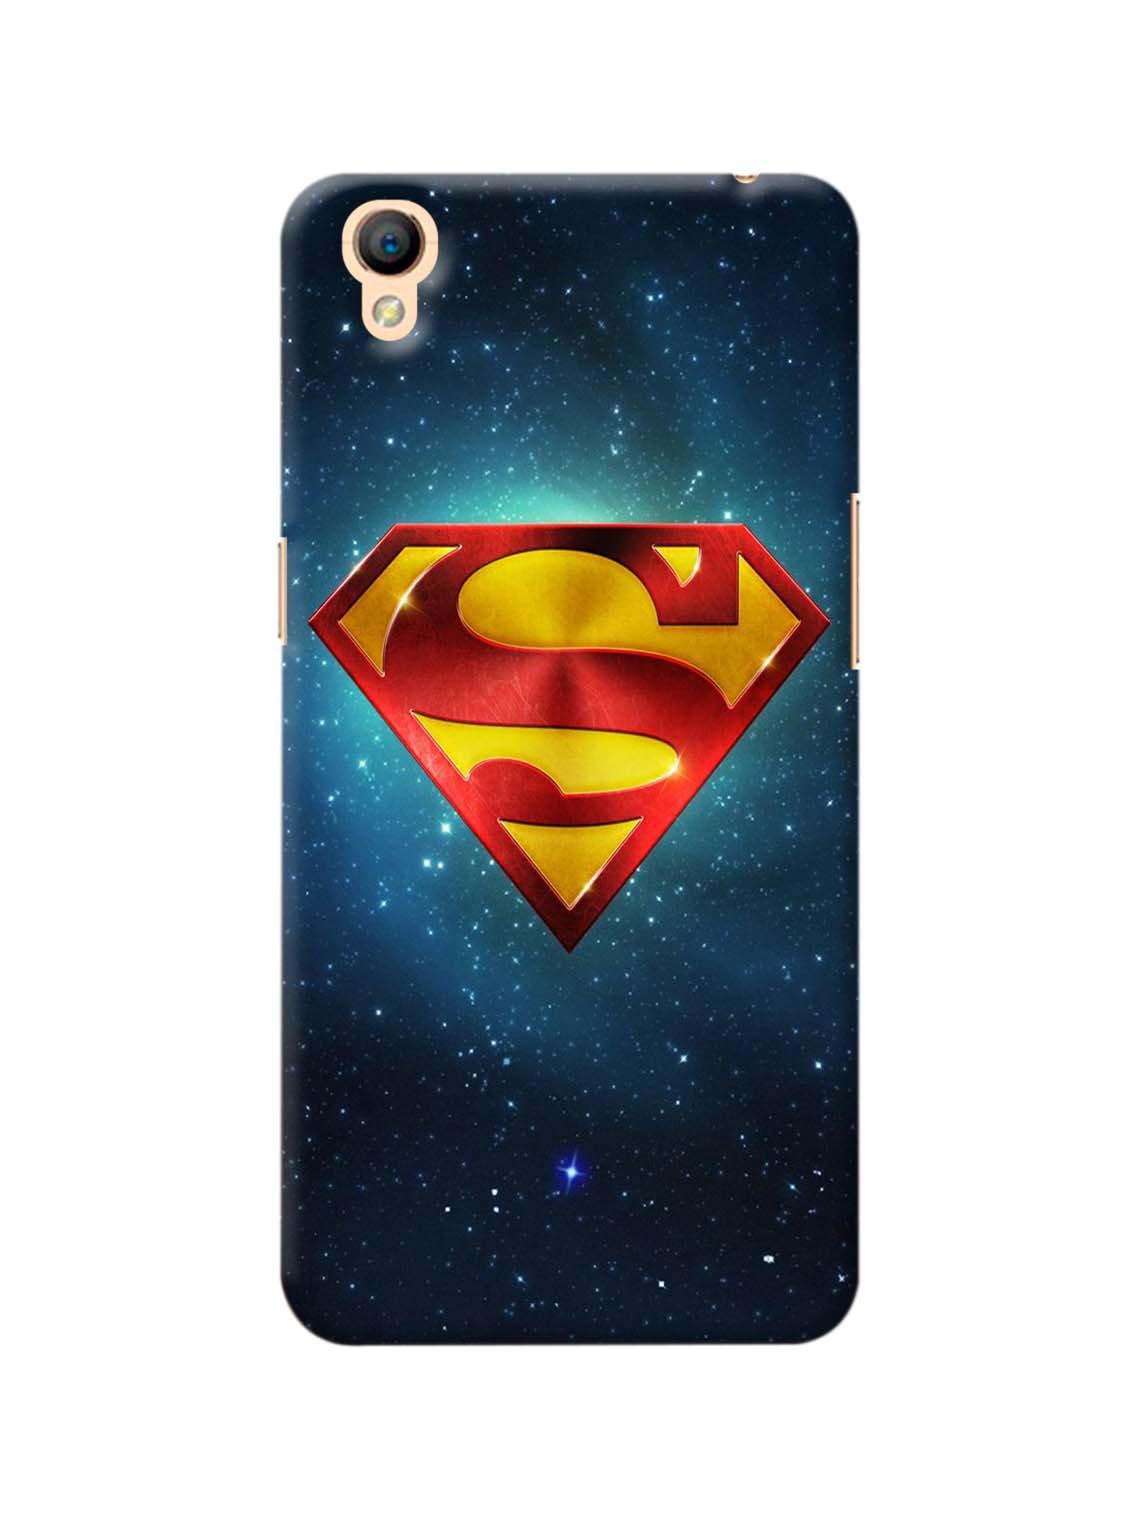 Superman Symbol Printed Mobile Case For Oppo A37